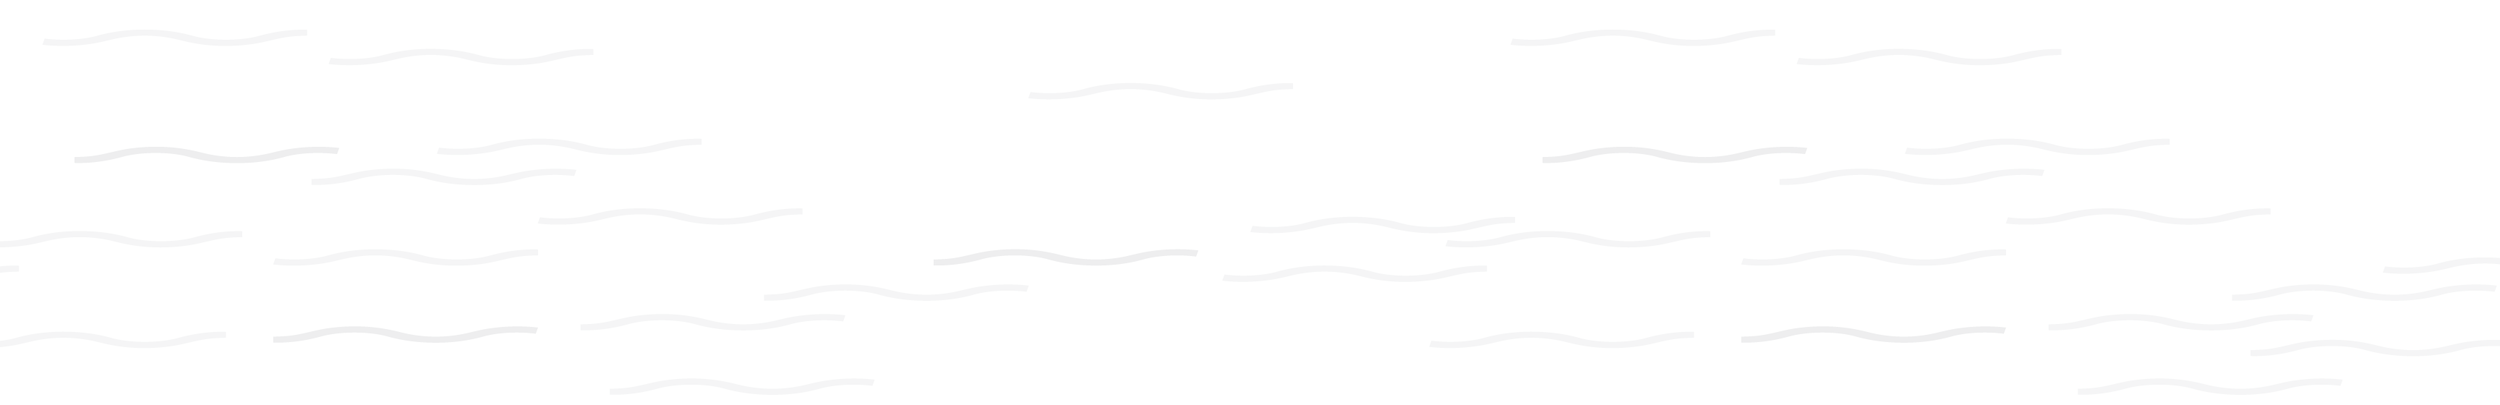 Waves_SectionDivider-01.png